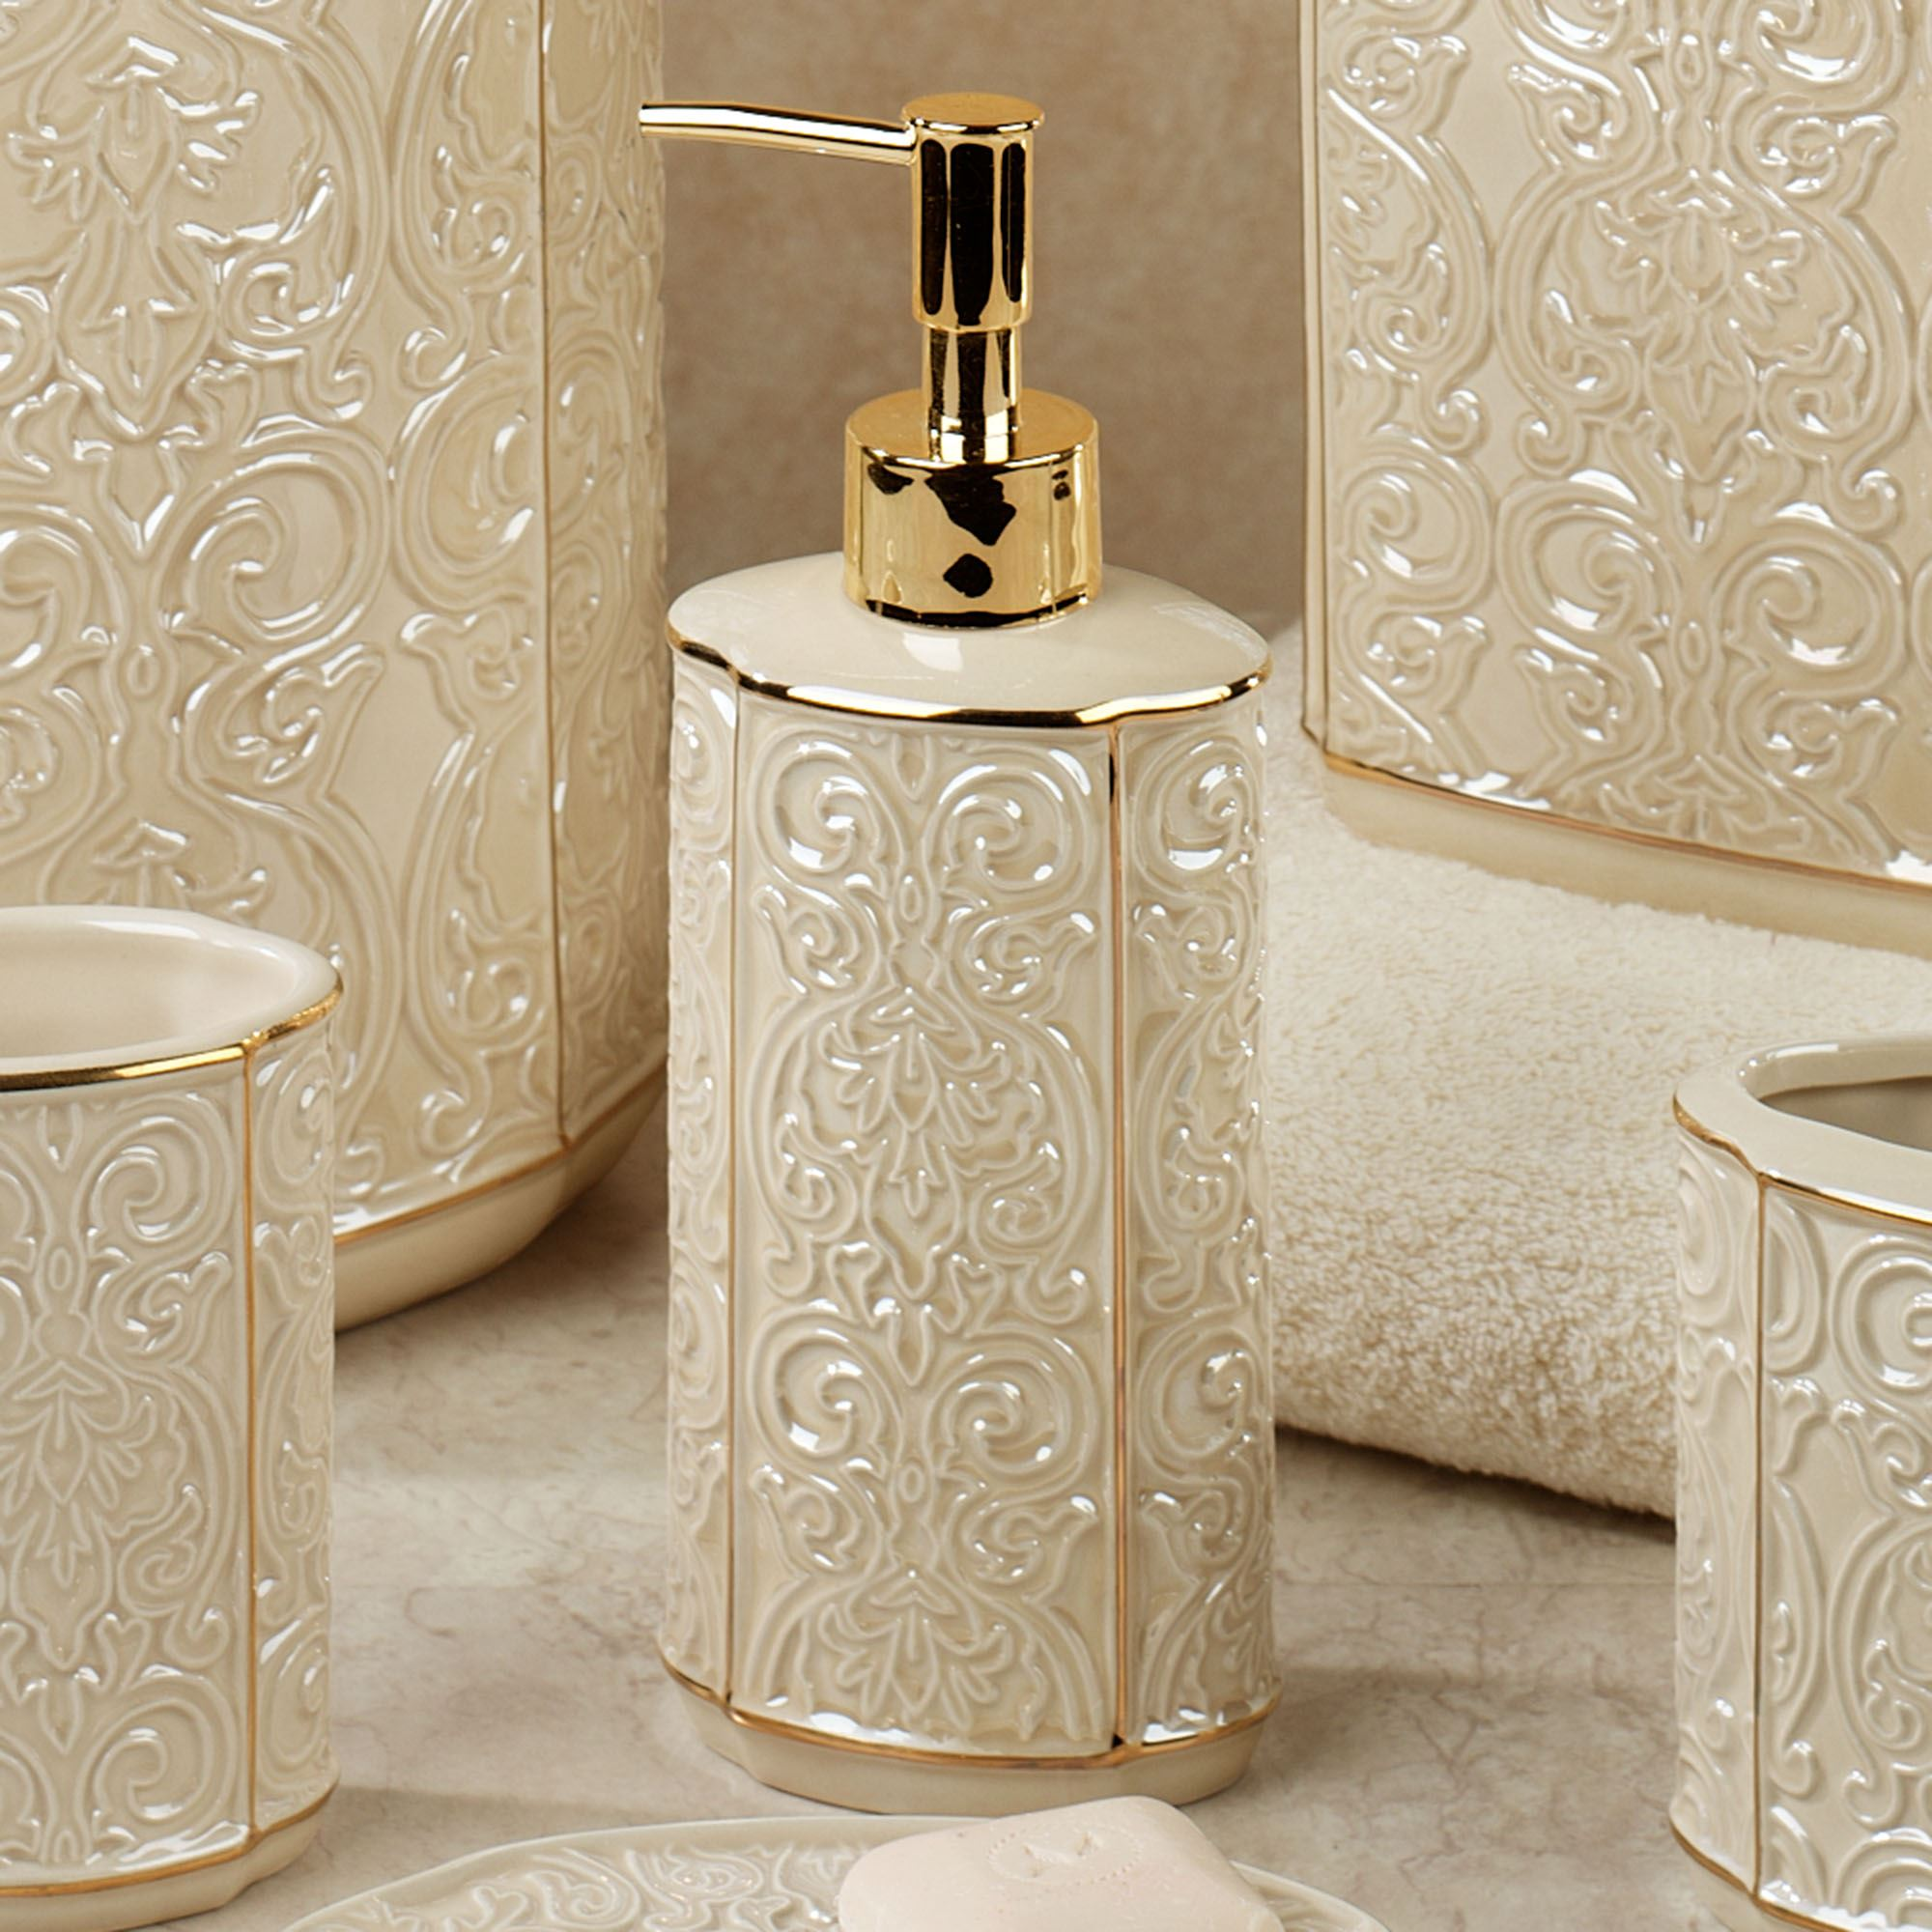 Furla cream damask ceramic bath accessories for Ceramic bath accessories